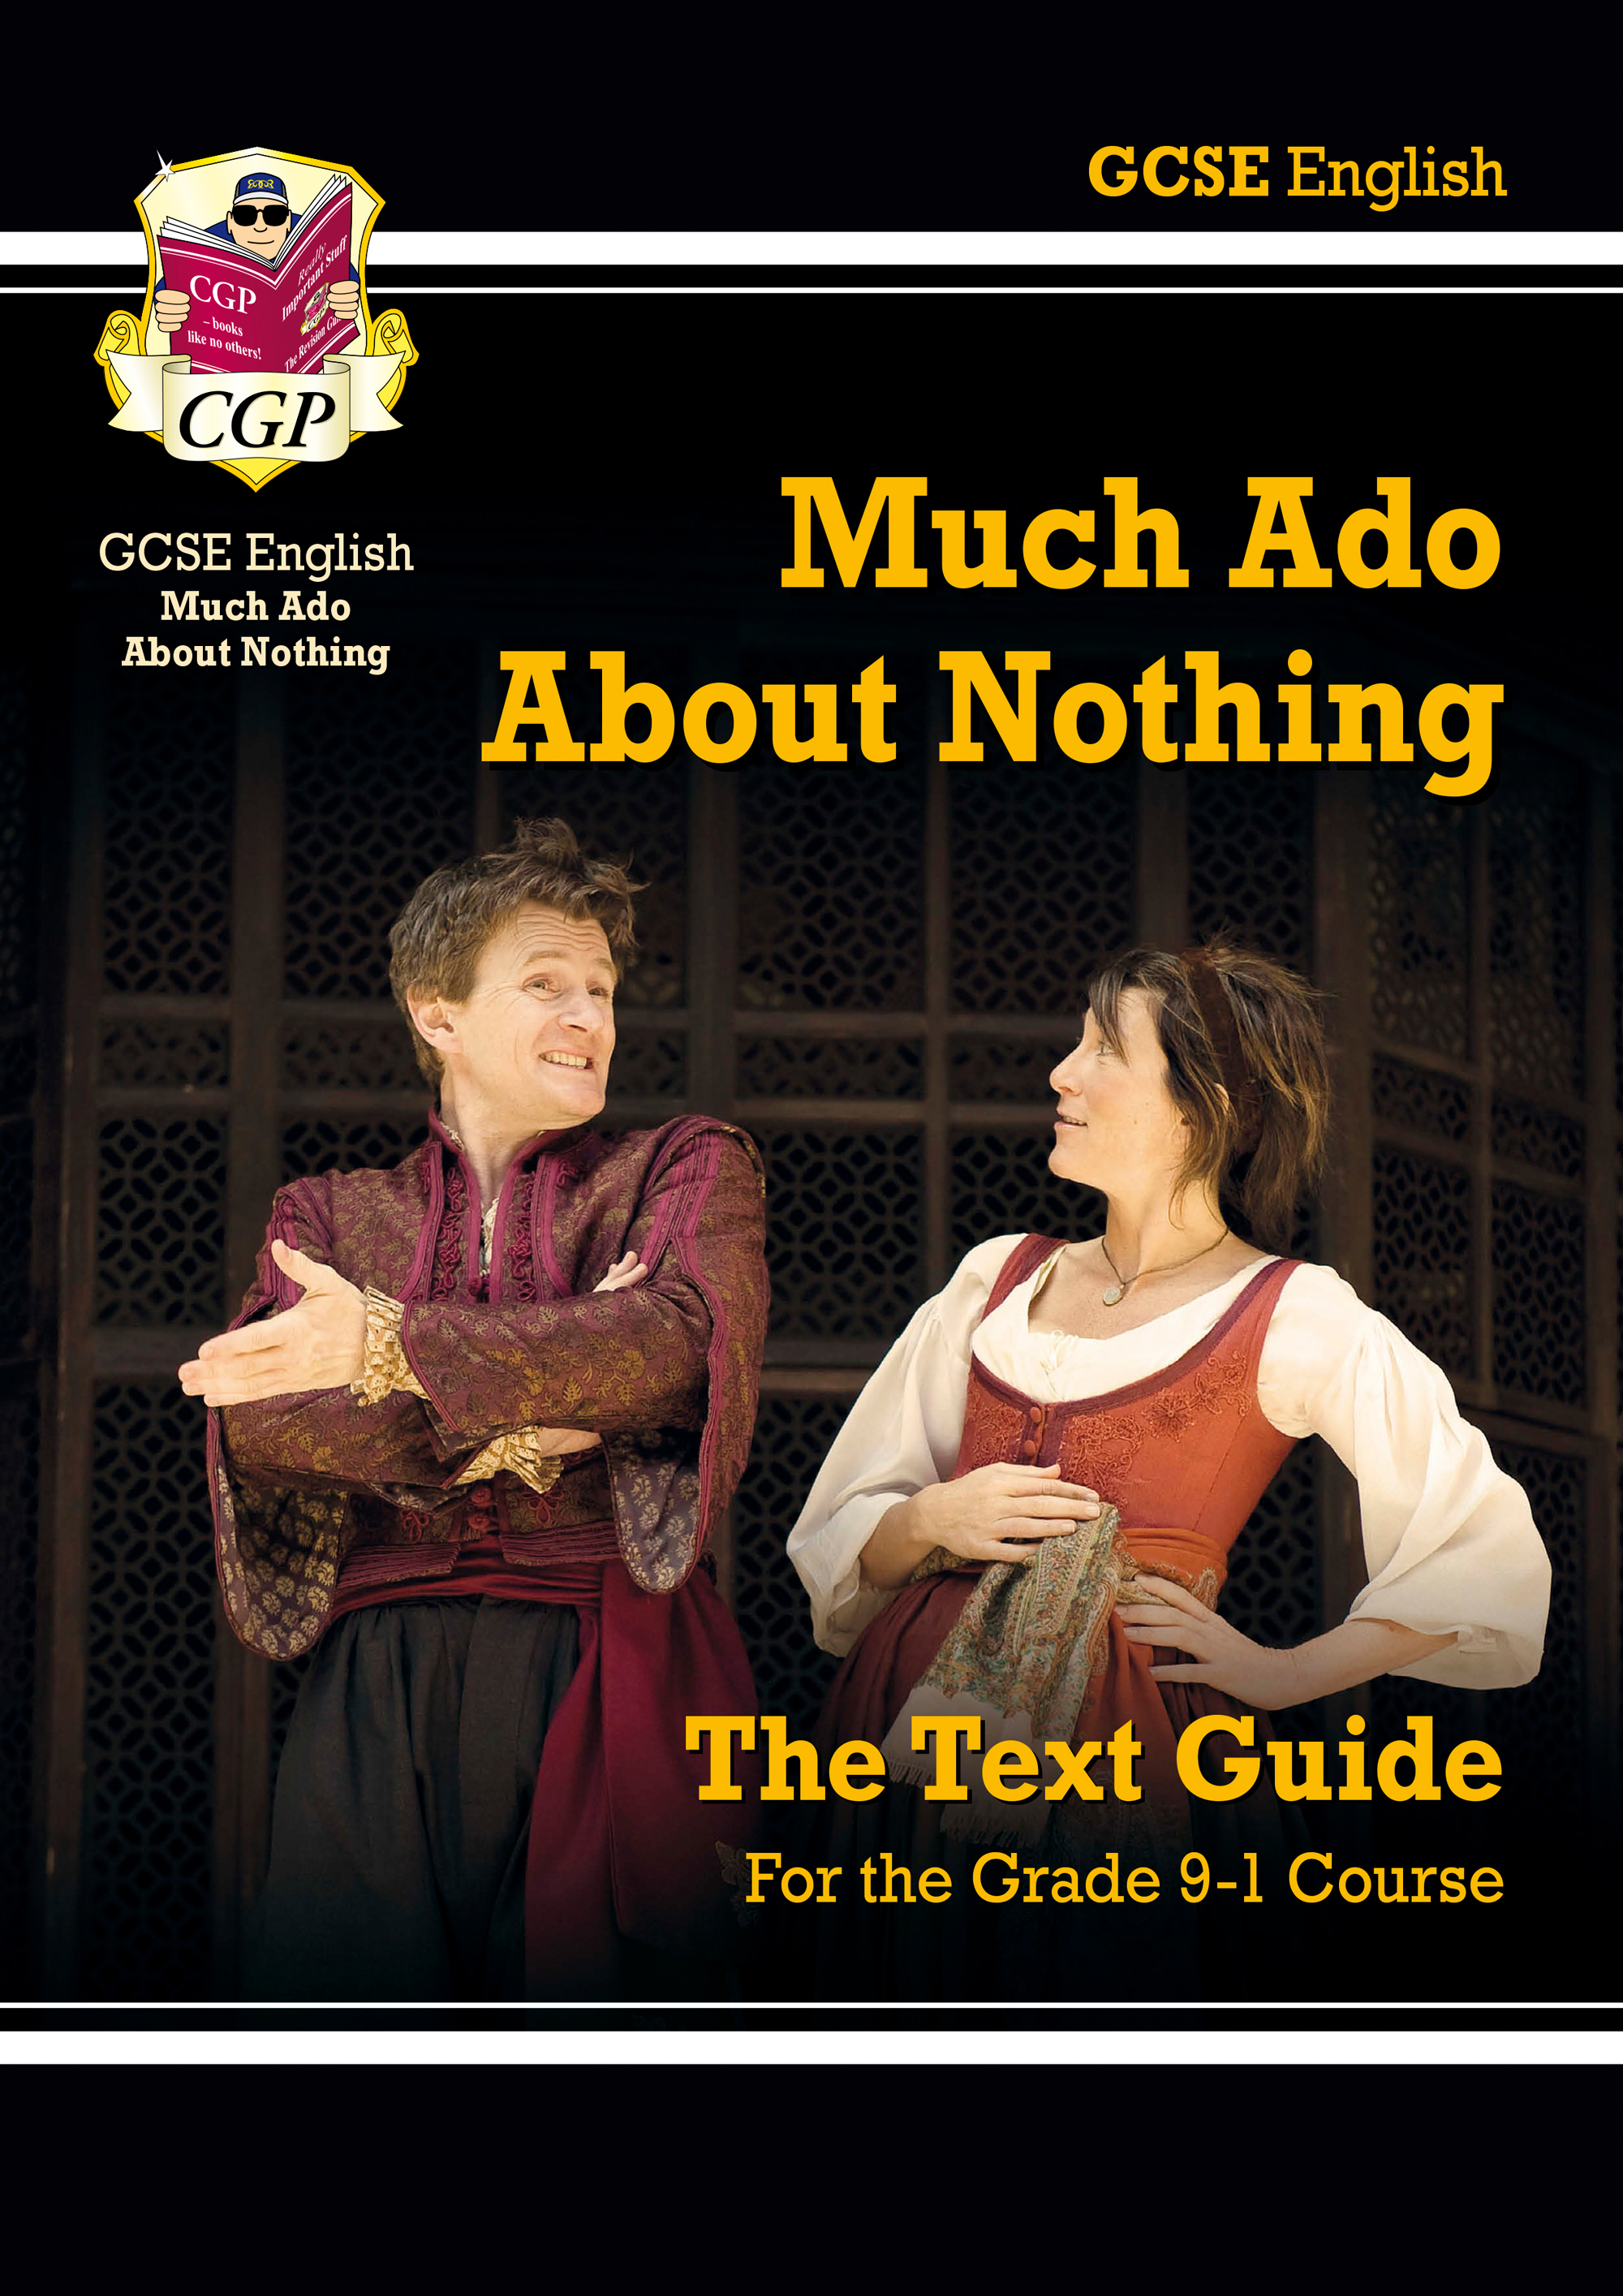 ETMA41DK - Grade 9-1 GCSE English Shakespeare Text Guide - Much Ado About Nothing